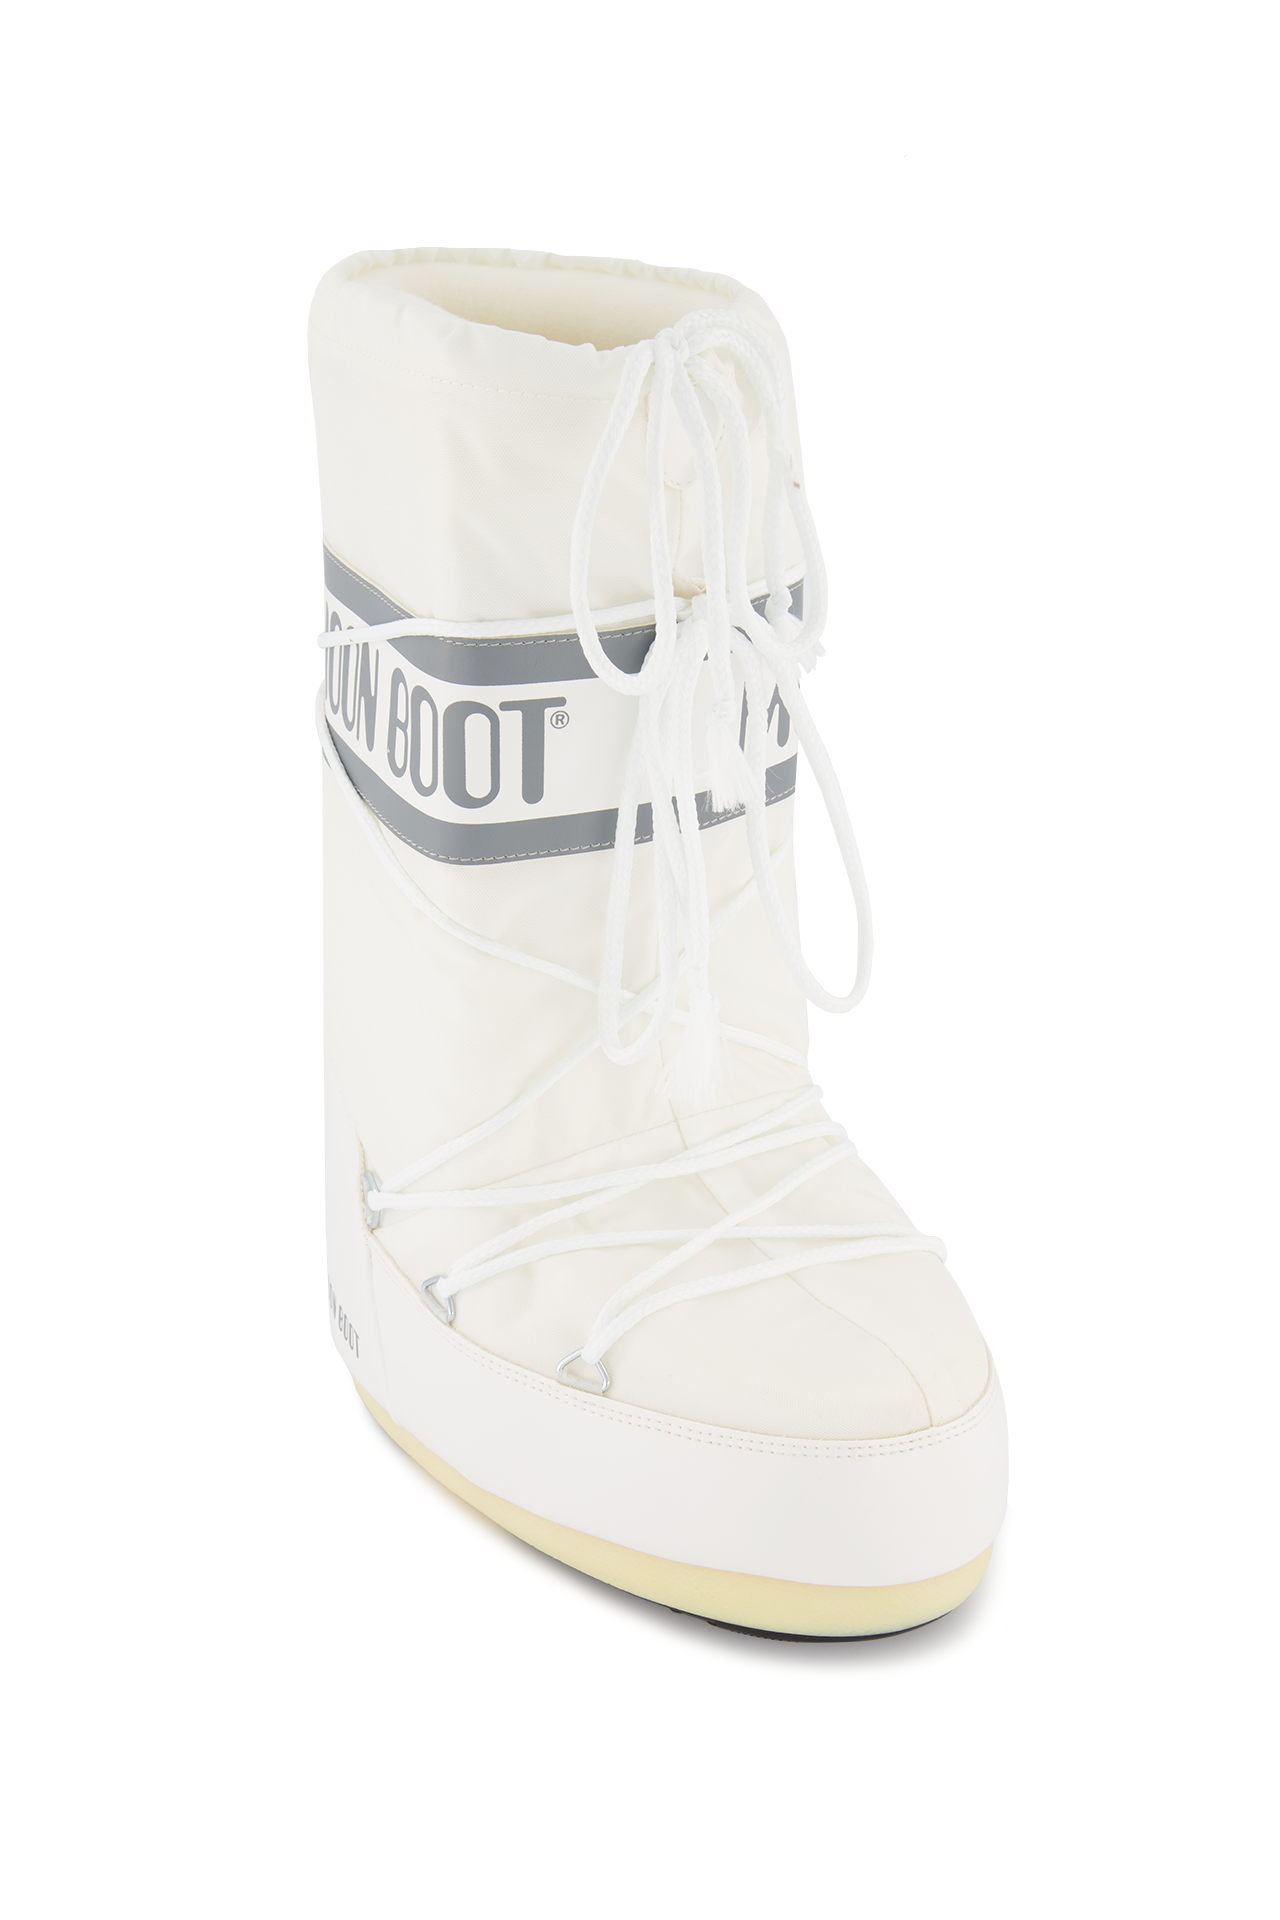 Lace Detail Image of Classic Moon Boots Nylon White